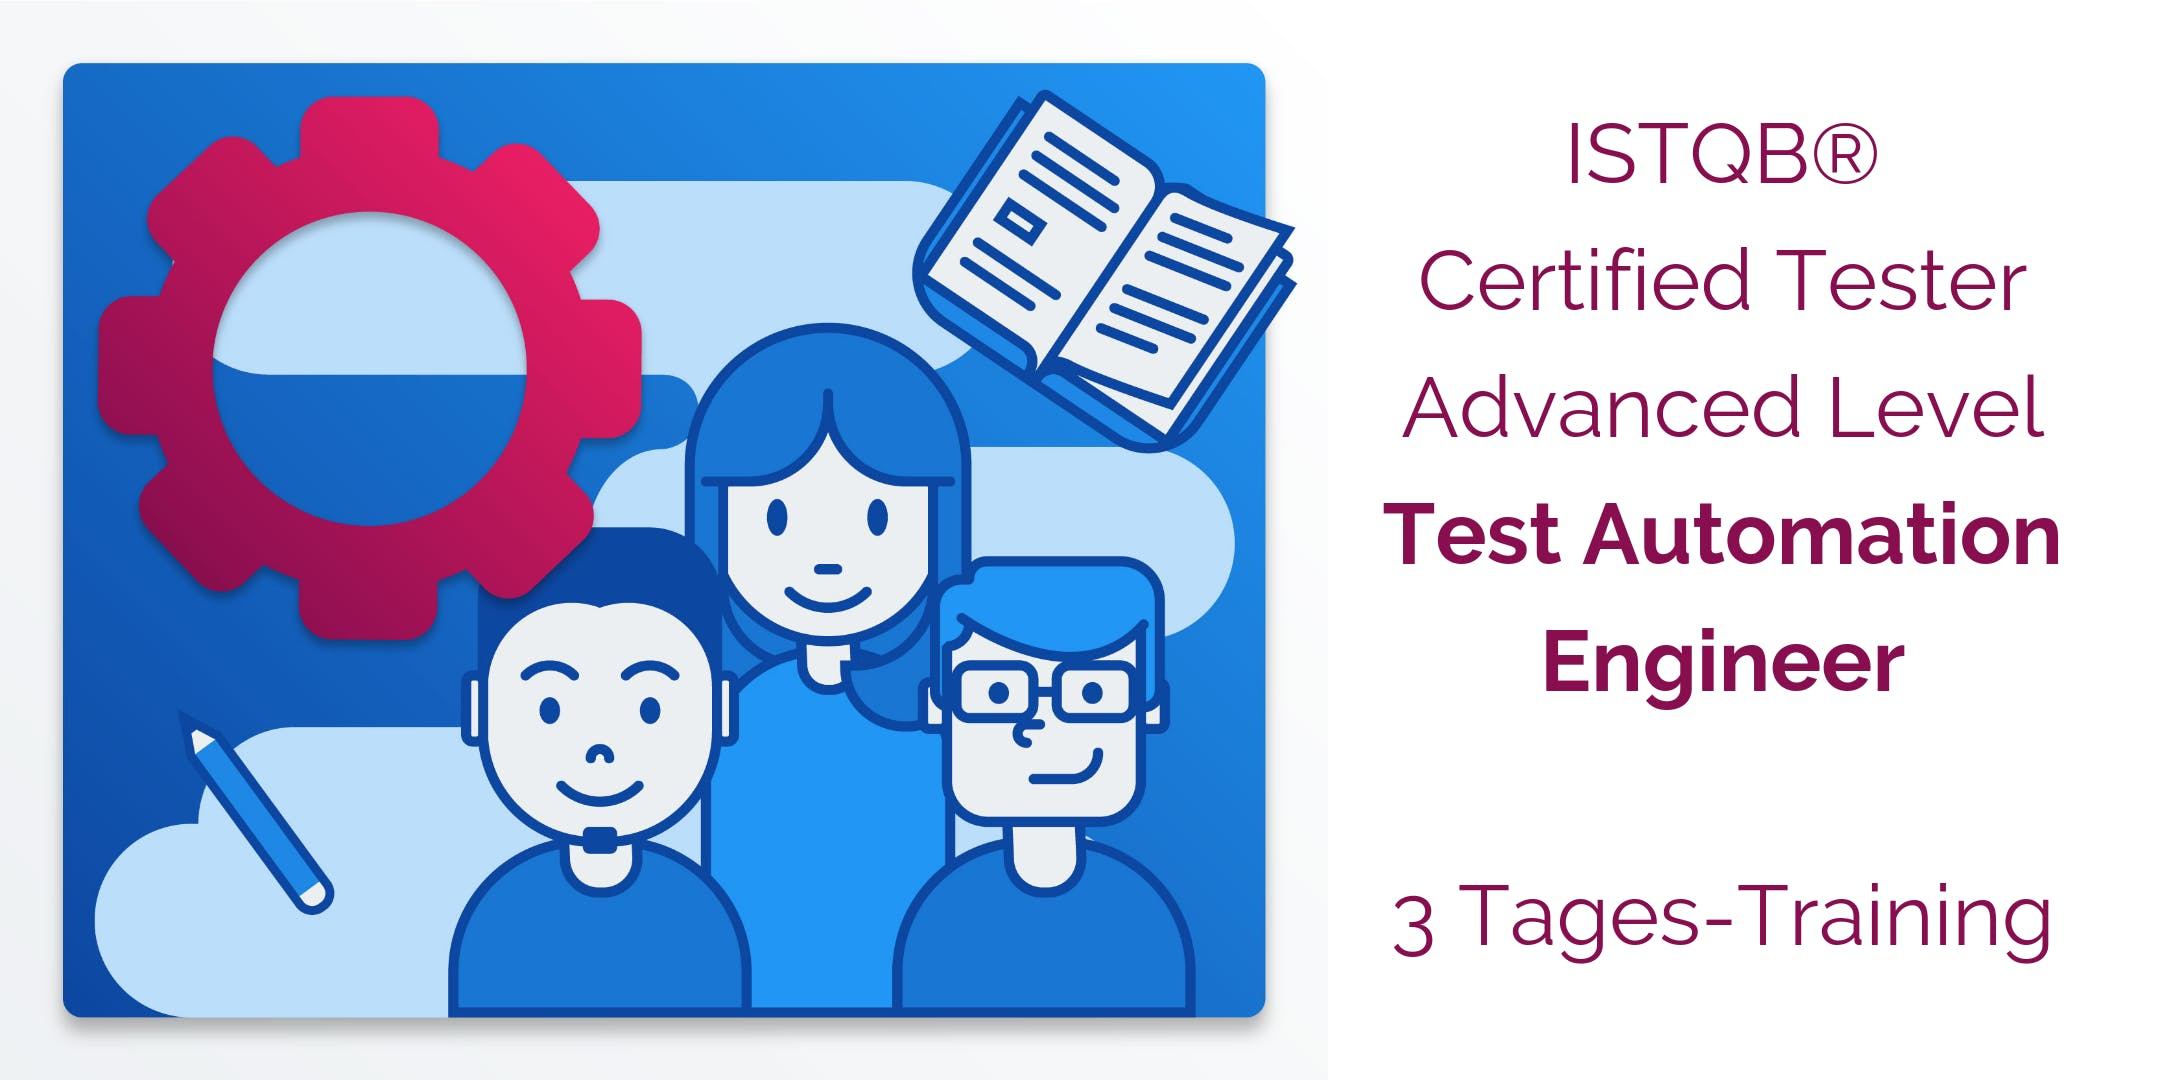 Last Minute: ISTQB® Certified Tester Advanced Level - Test Automation Engineer Training